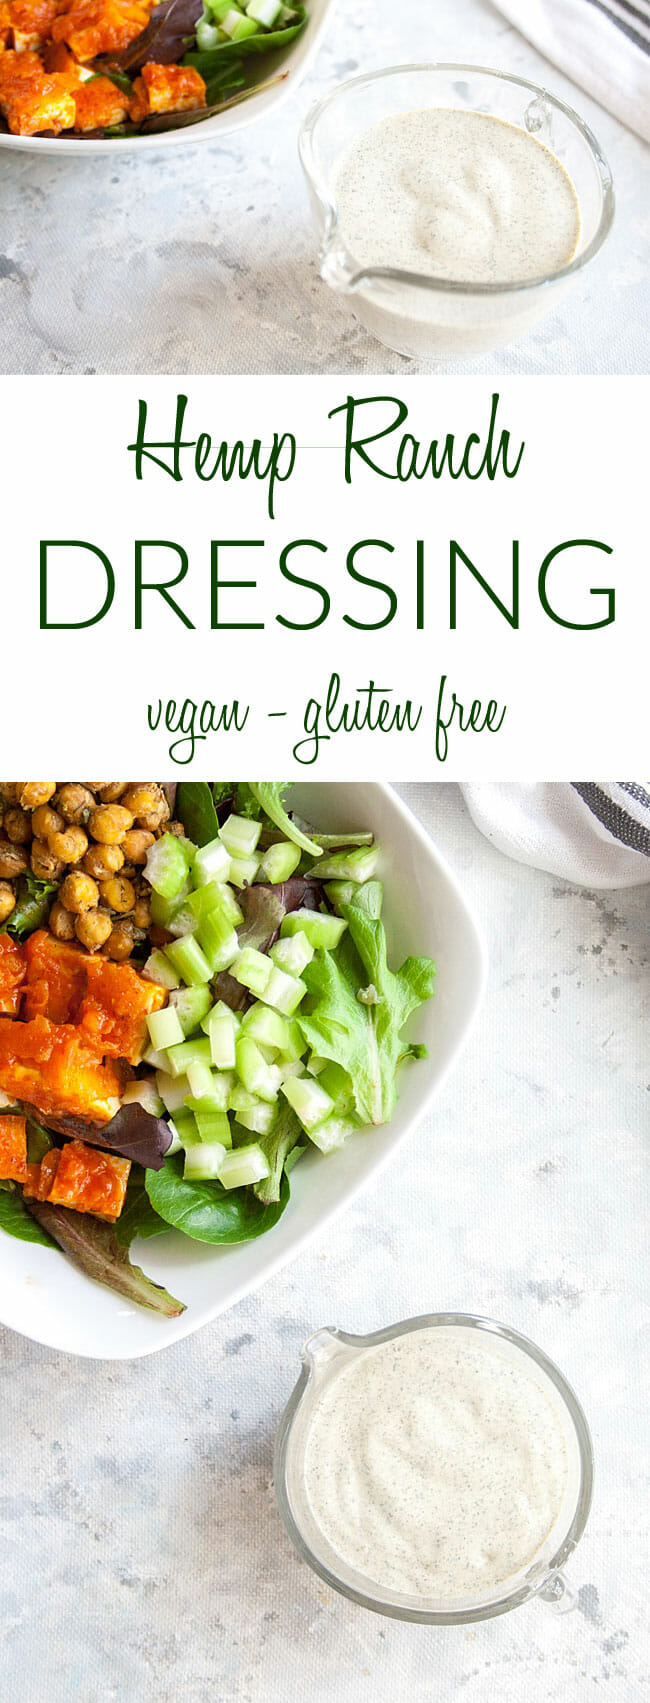 Vegan Ranch Dressing Recipe collage photo with text.